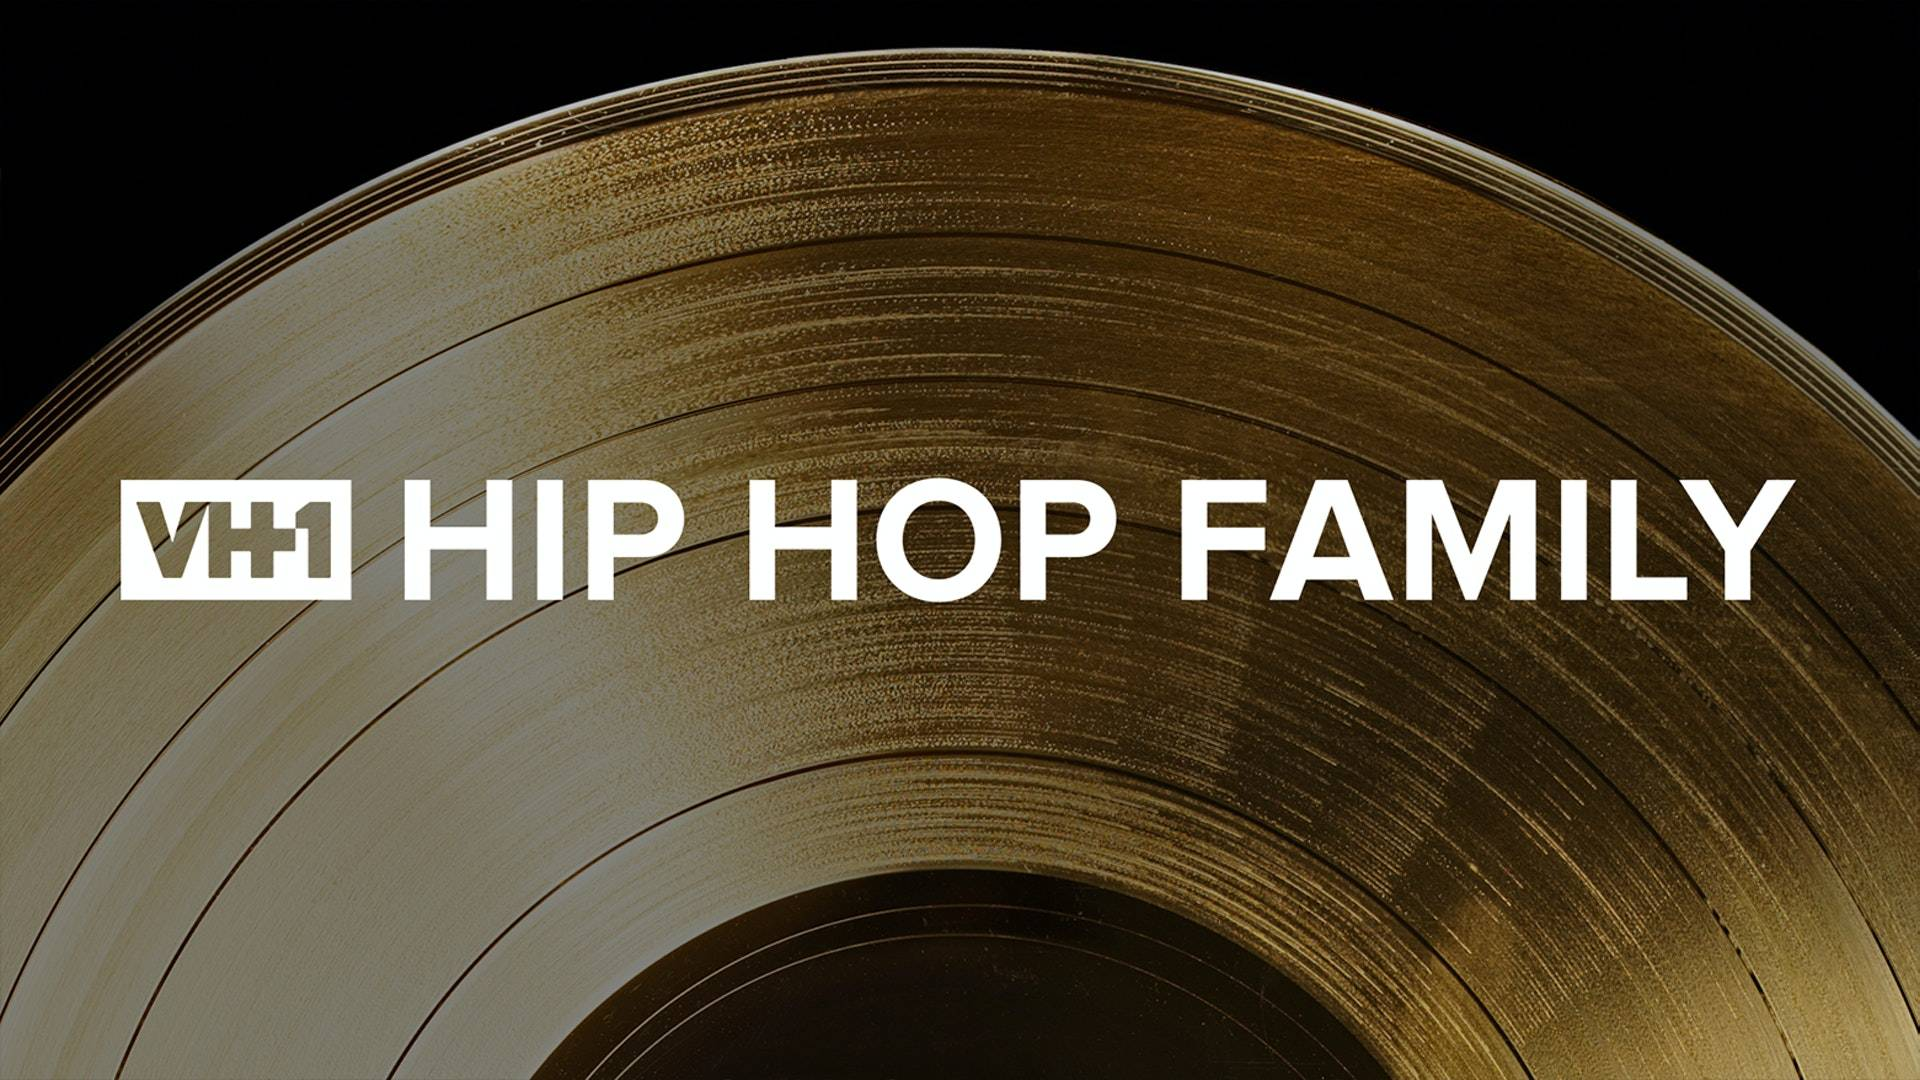 Watch VH1's Hip Hop Family Channel On Pluto TV